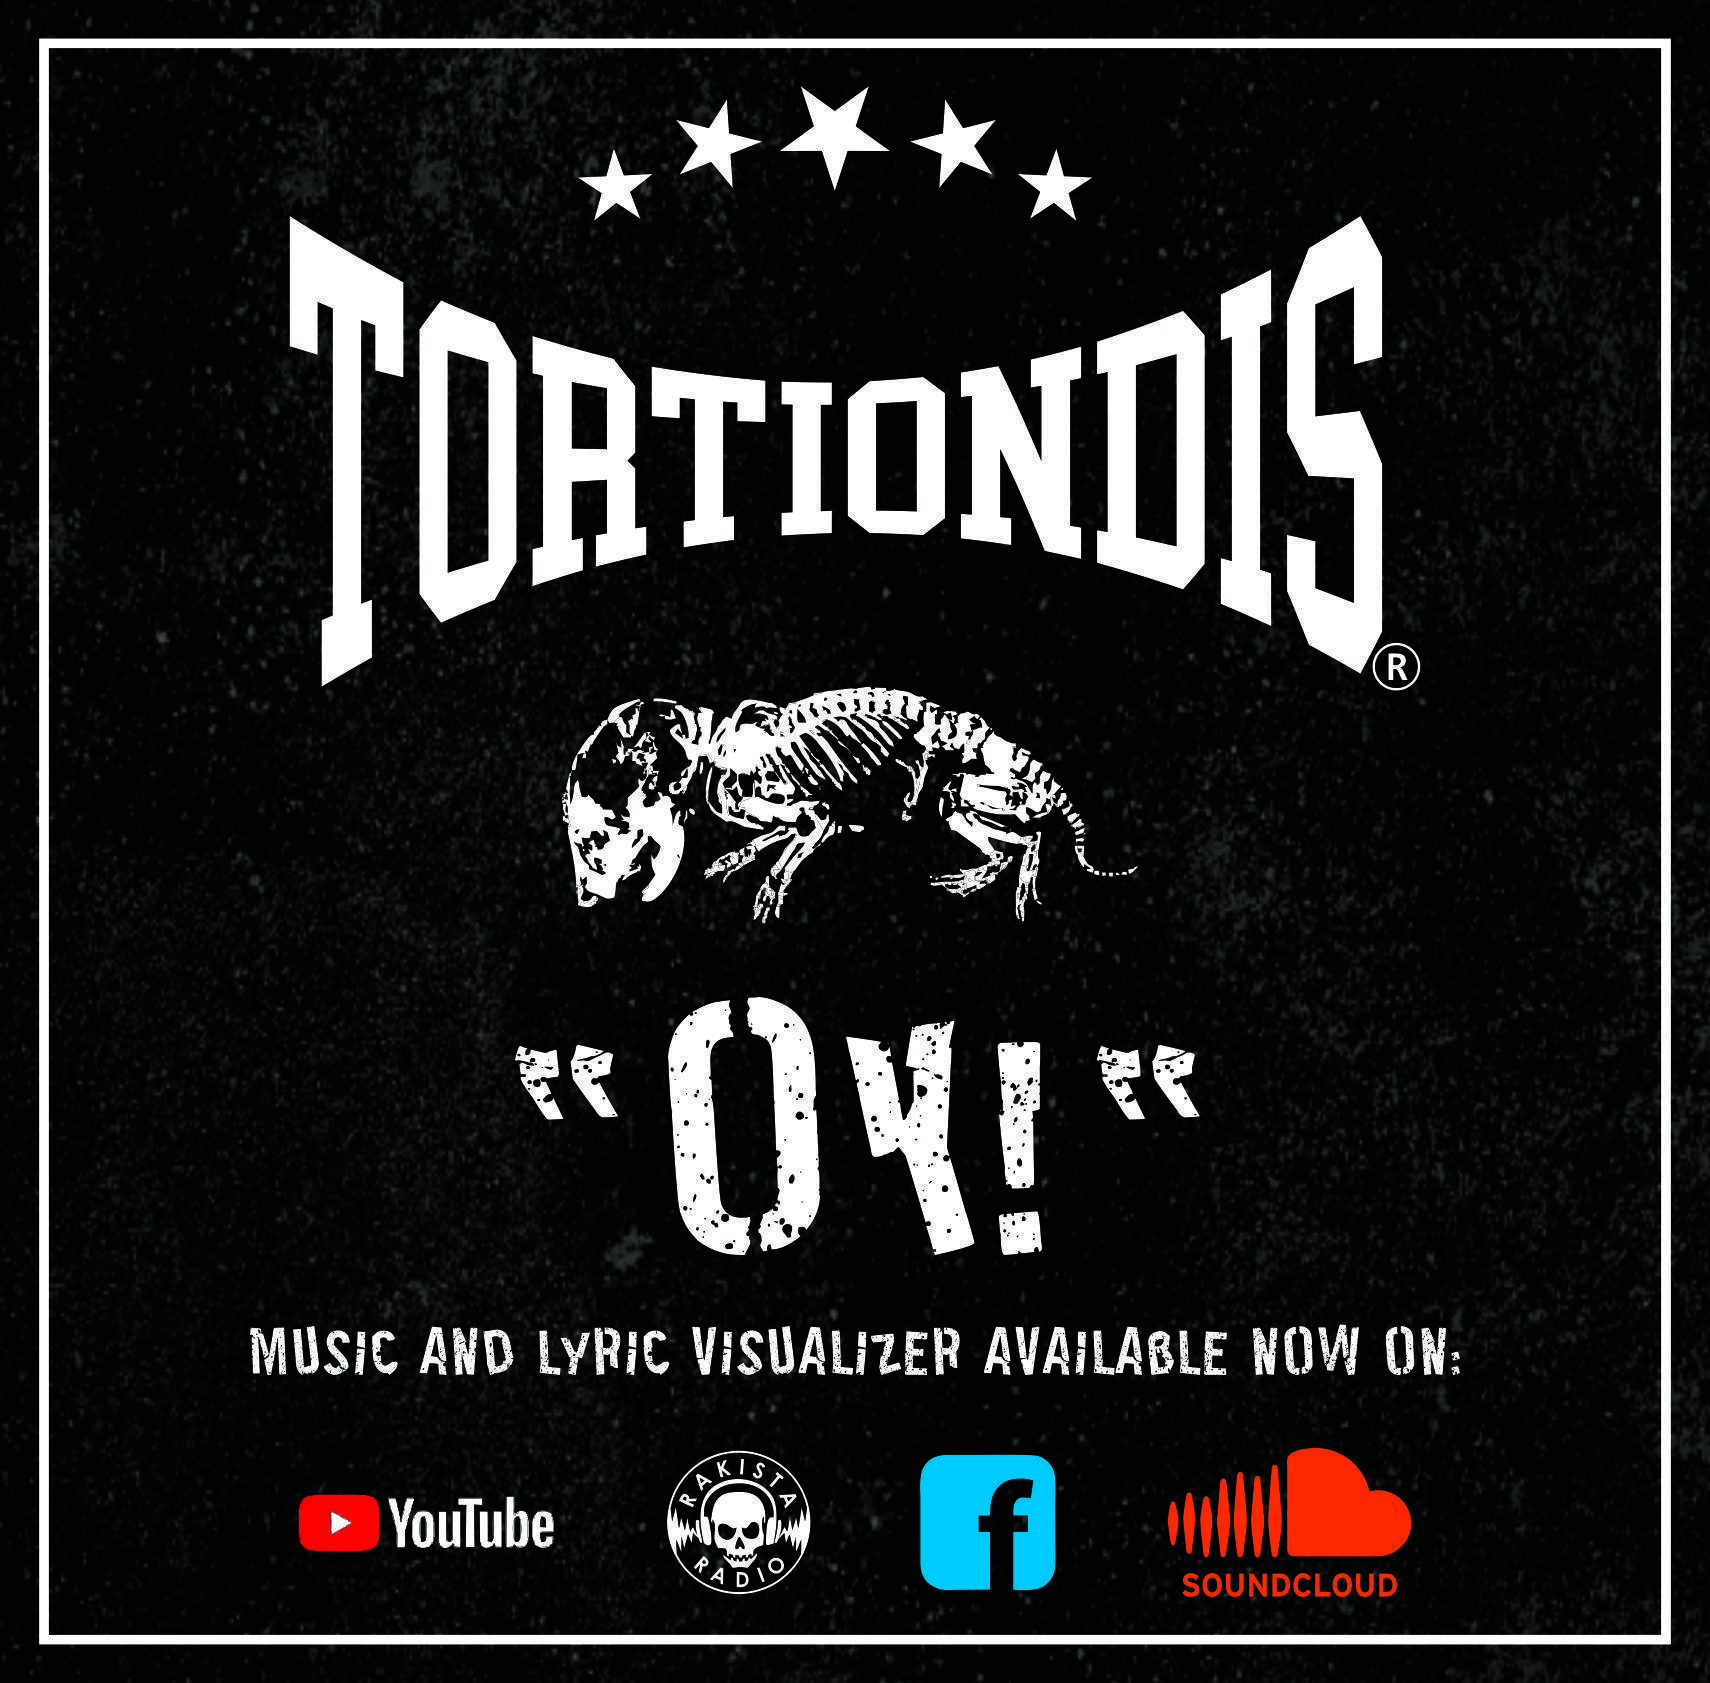 """Serving Us With Some Black and White Themed Visual, TortionDis Releases the Official MV of their Top-of-the-Chart Single, """"OY!"""""""